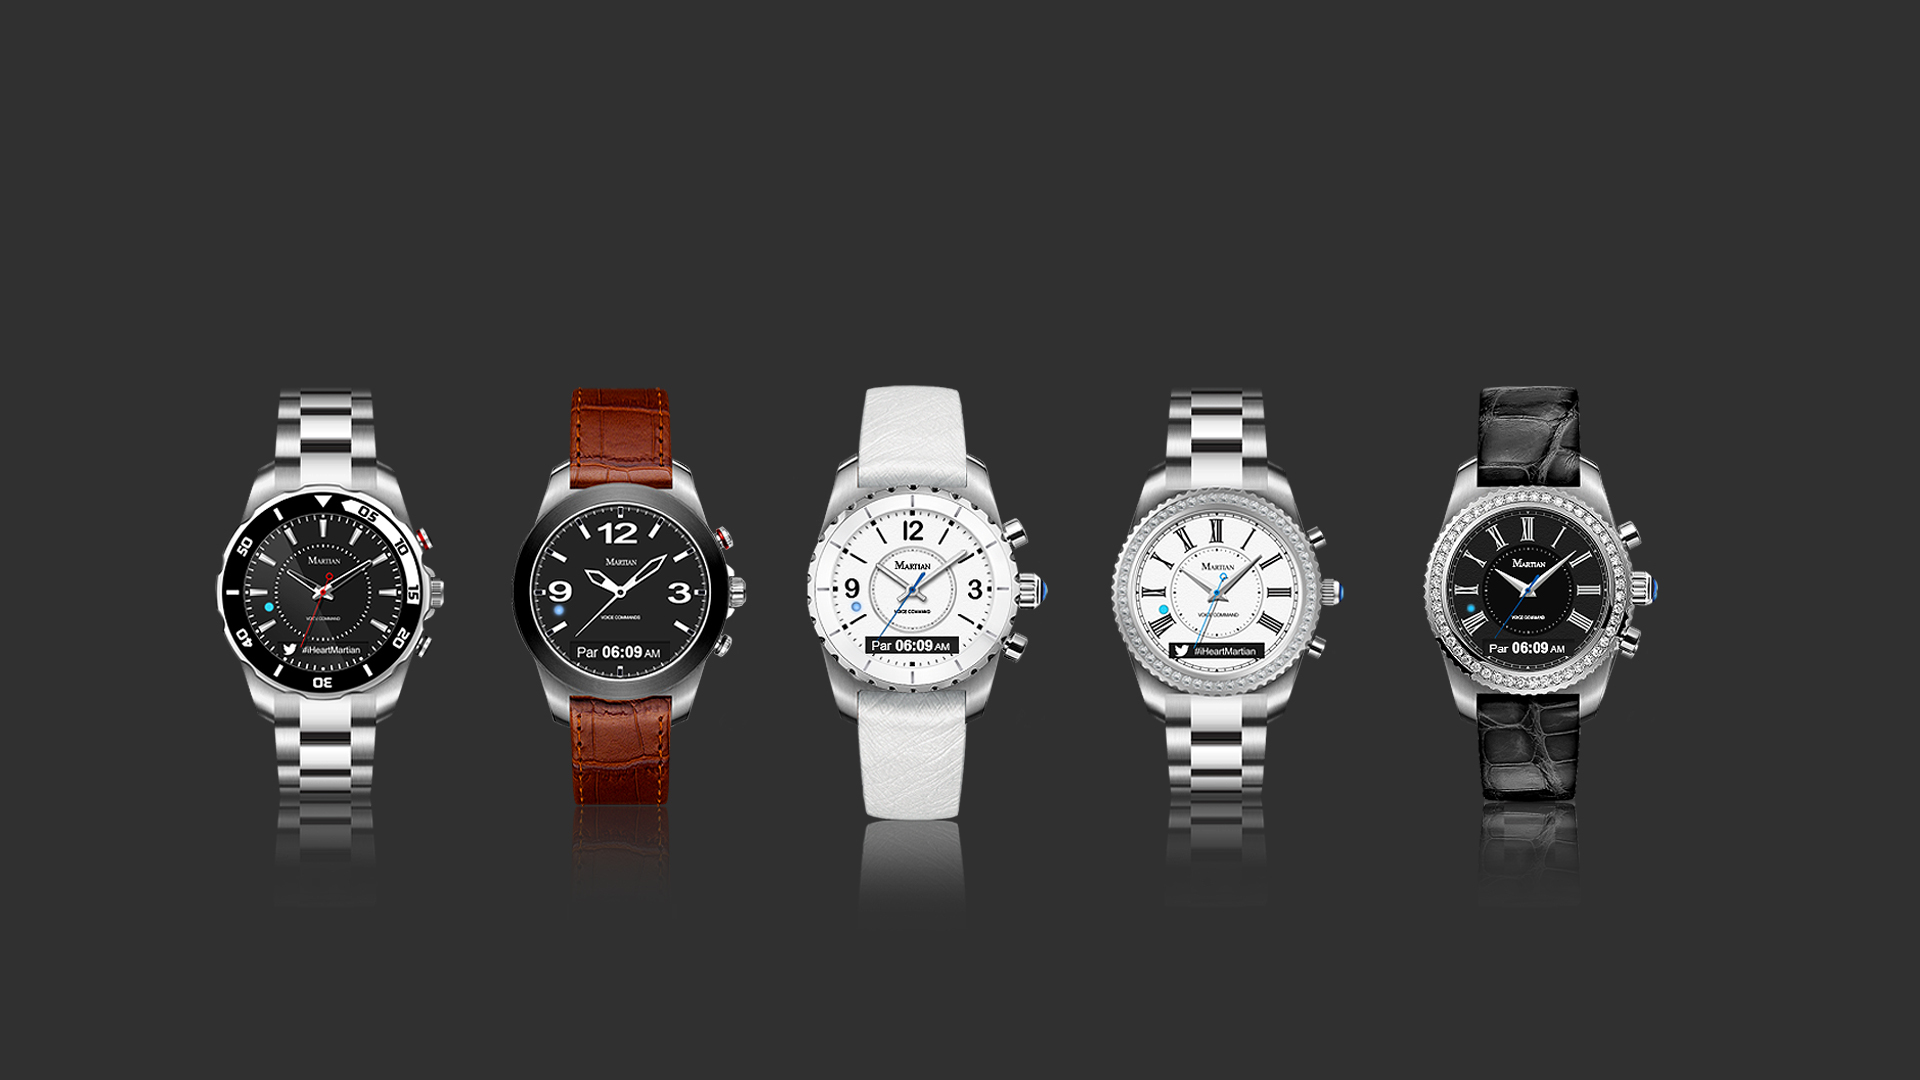 93244b18d6e Martian Watches Introduces New Smartwatch Designs to Suit a Myriad of  Tastes and Styles